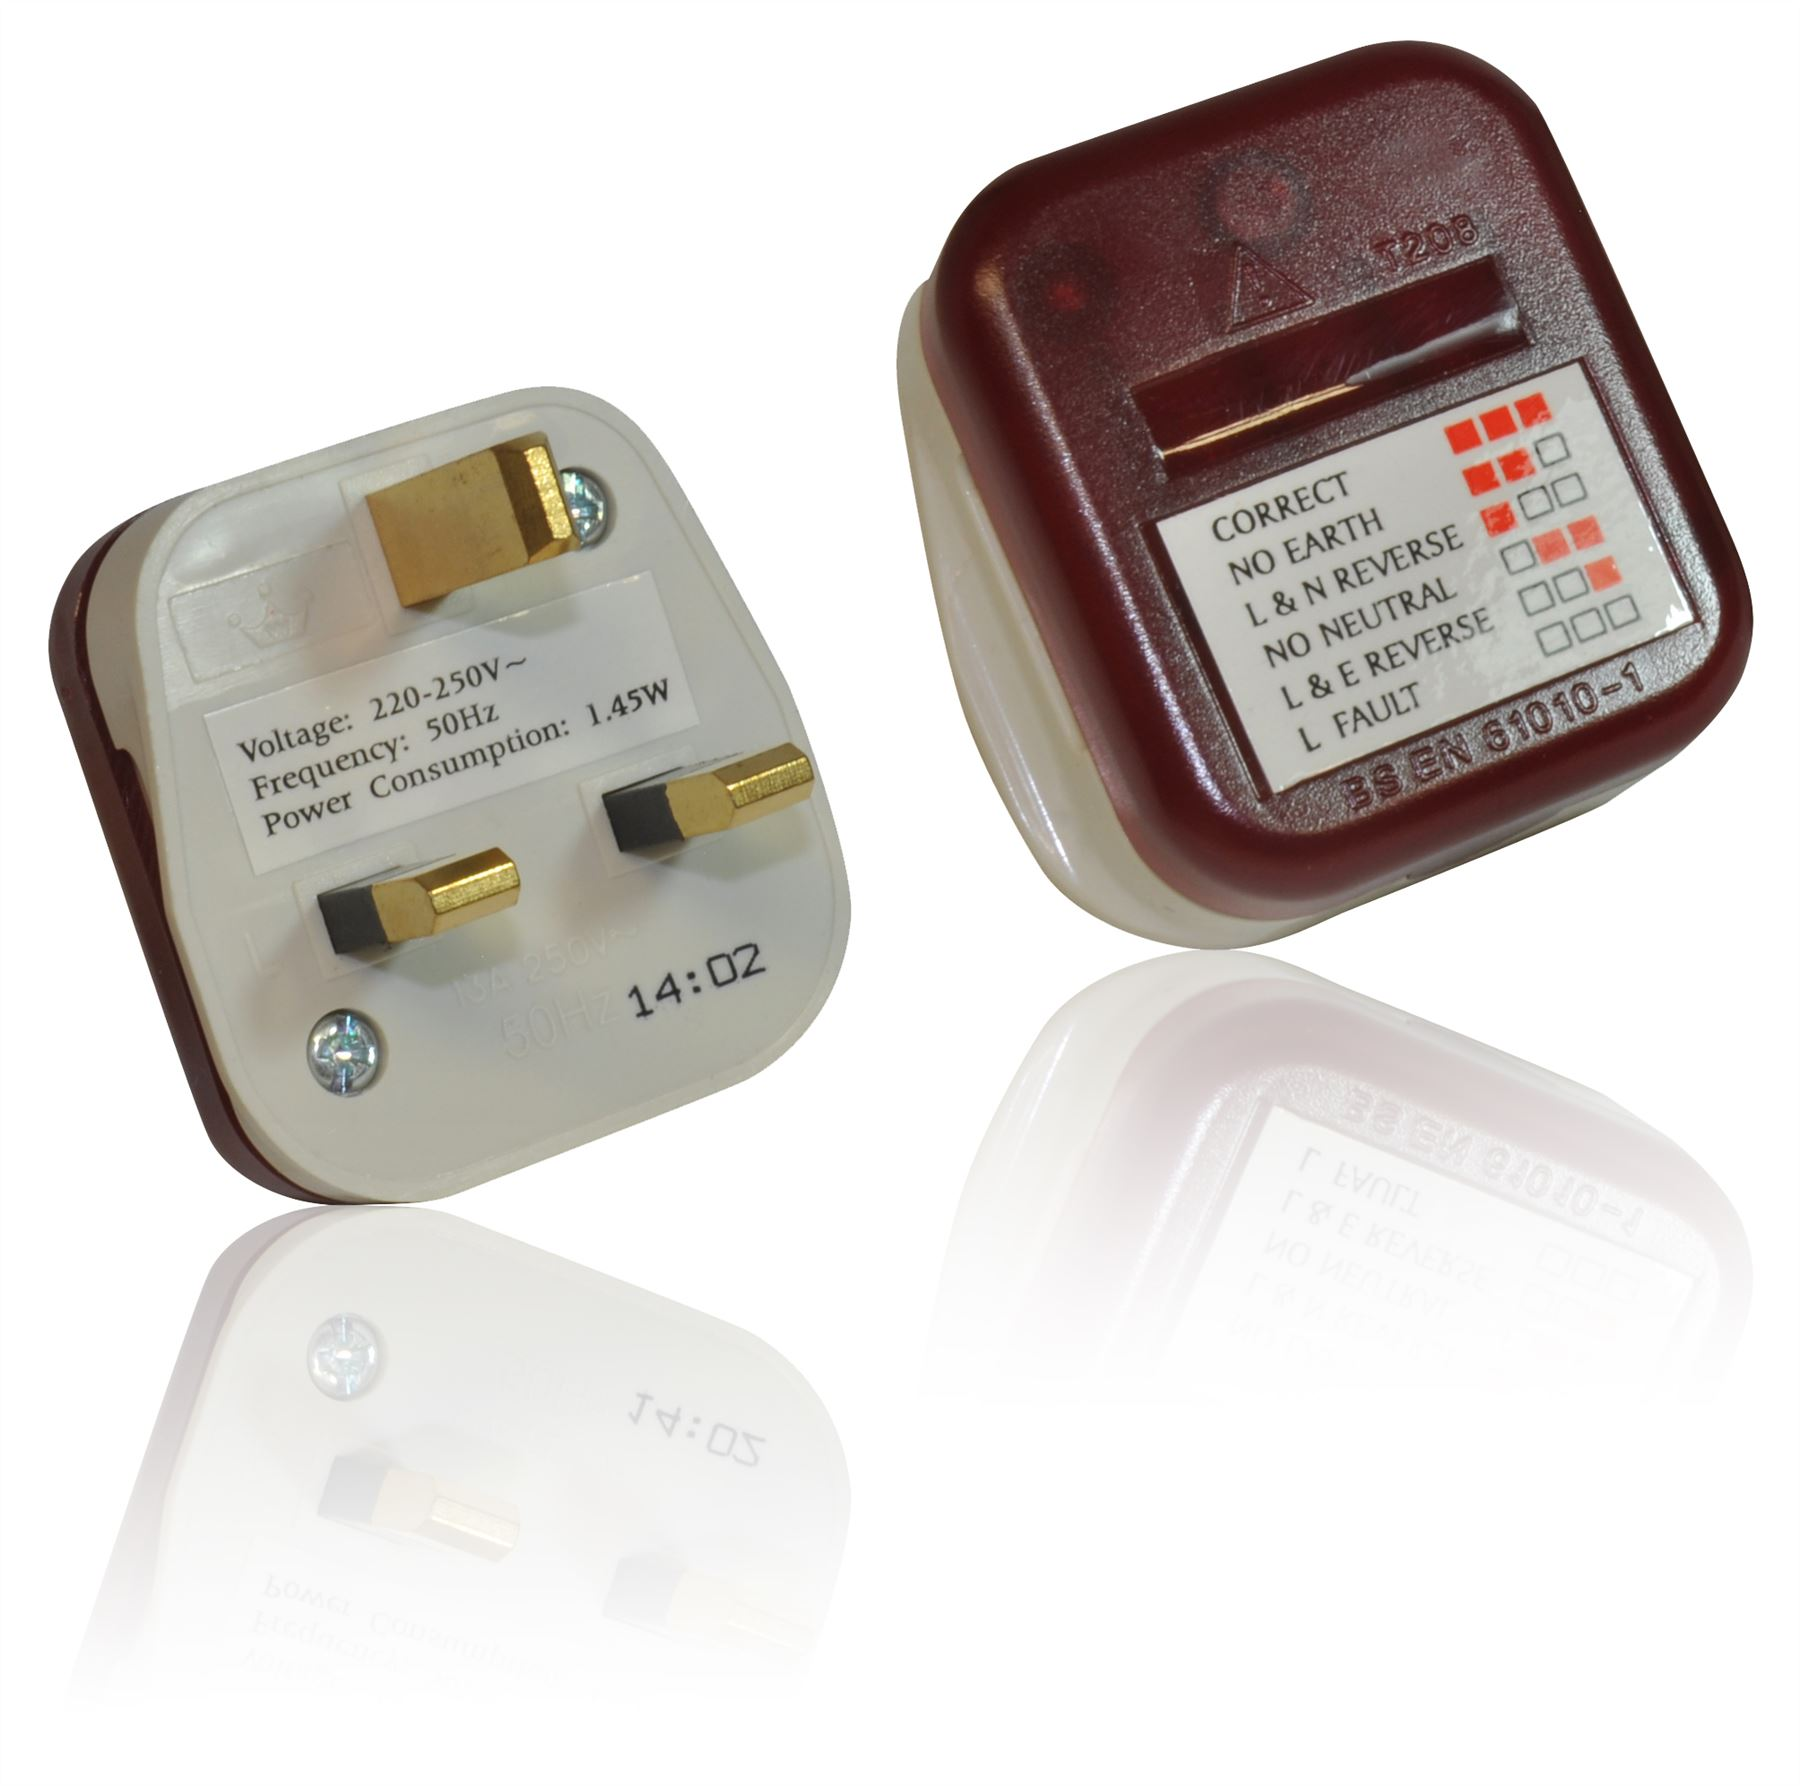 Electrical Socket Tester : Uk mains electrical power plug in socket tester test